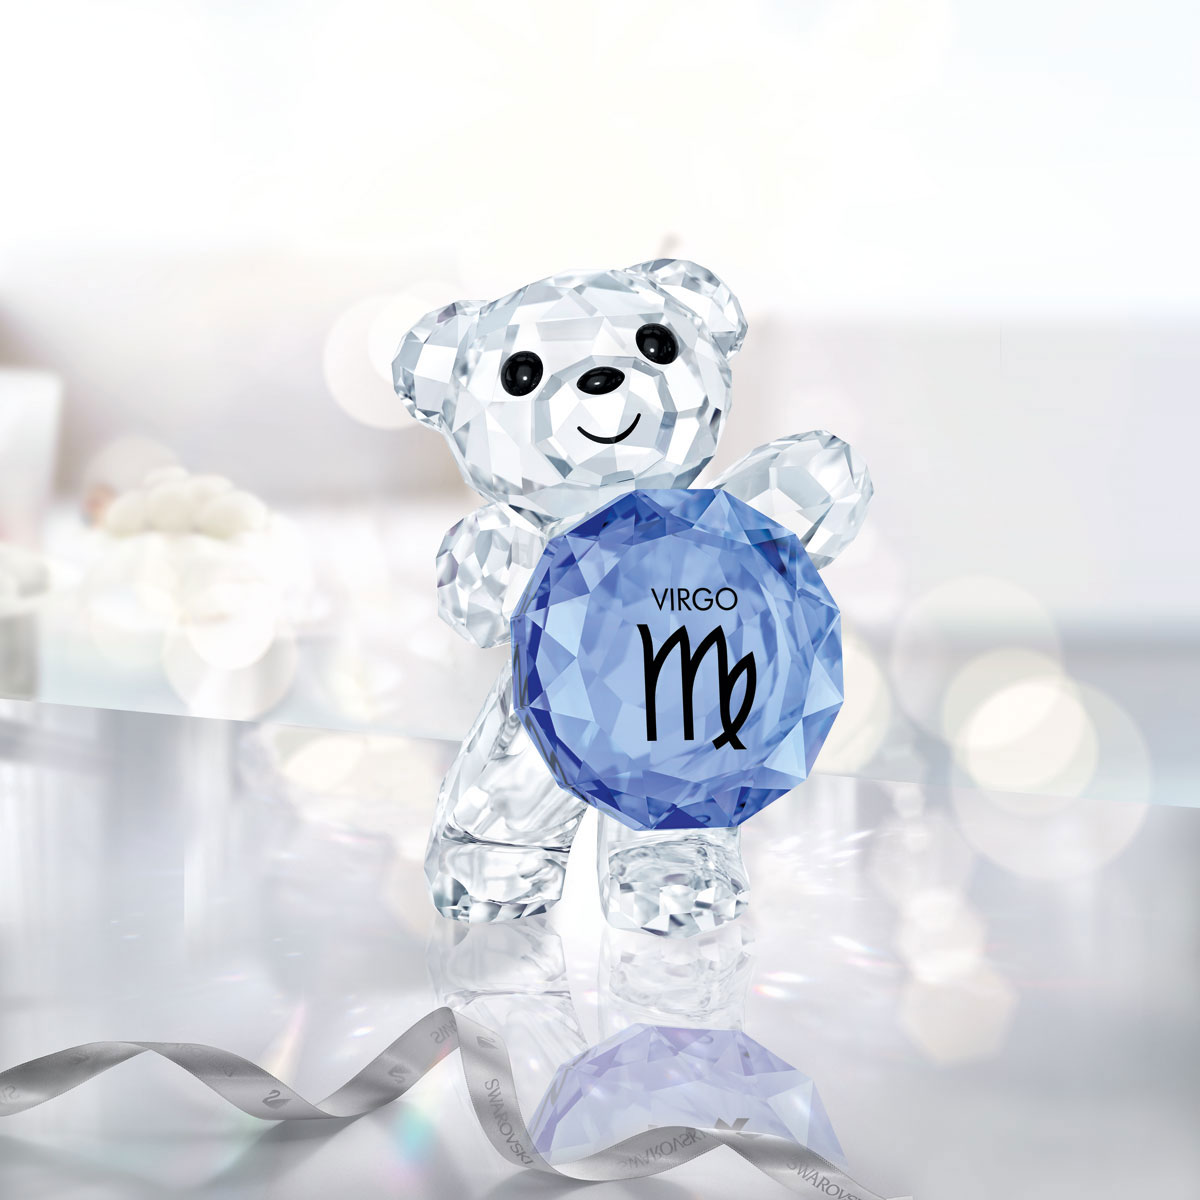 Swarovski Crystal, Kris Bear Horoscope Virgo Crystal Sculpture